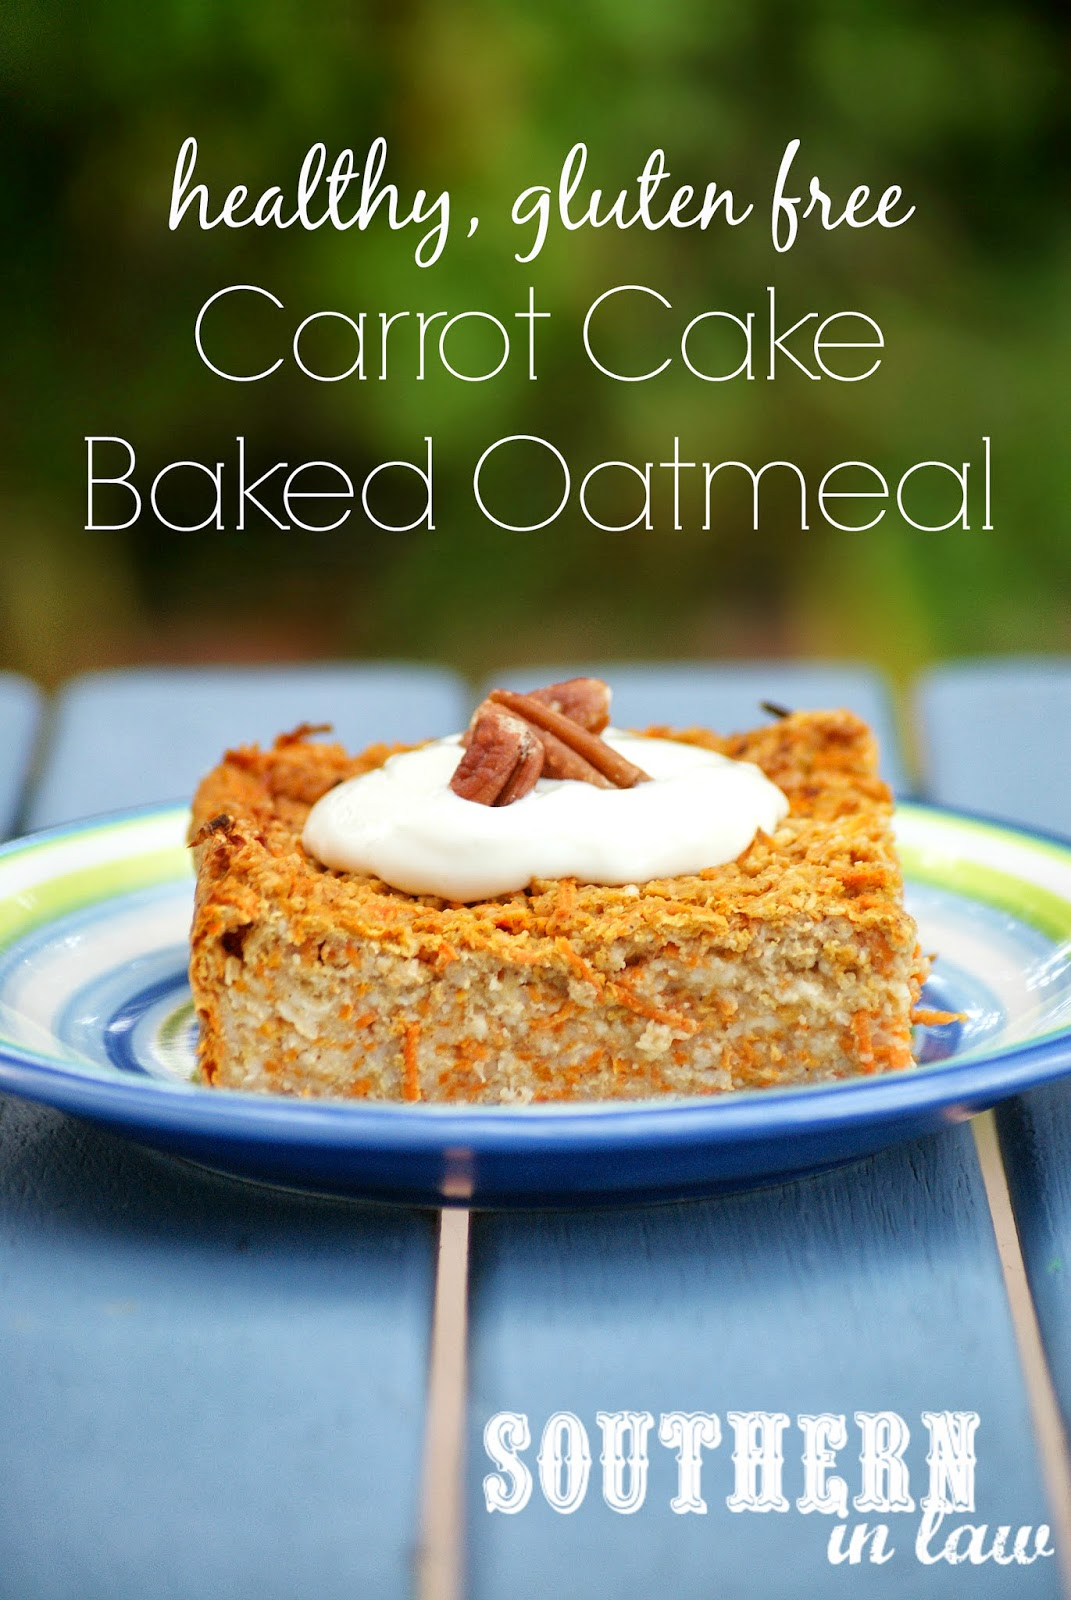 Baked Carrot Cake Oatmeal Recipe - Healthy, gluten free, low fat, sugar free, clean eating friendly